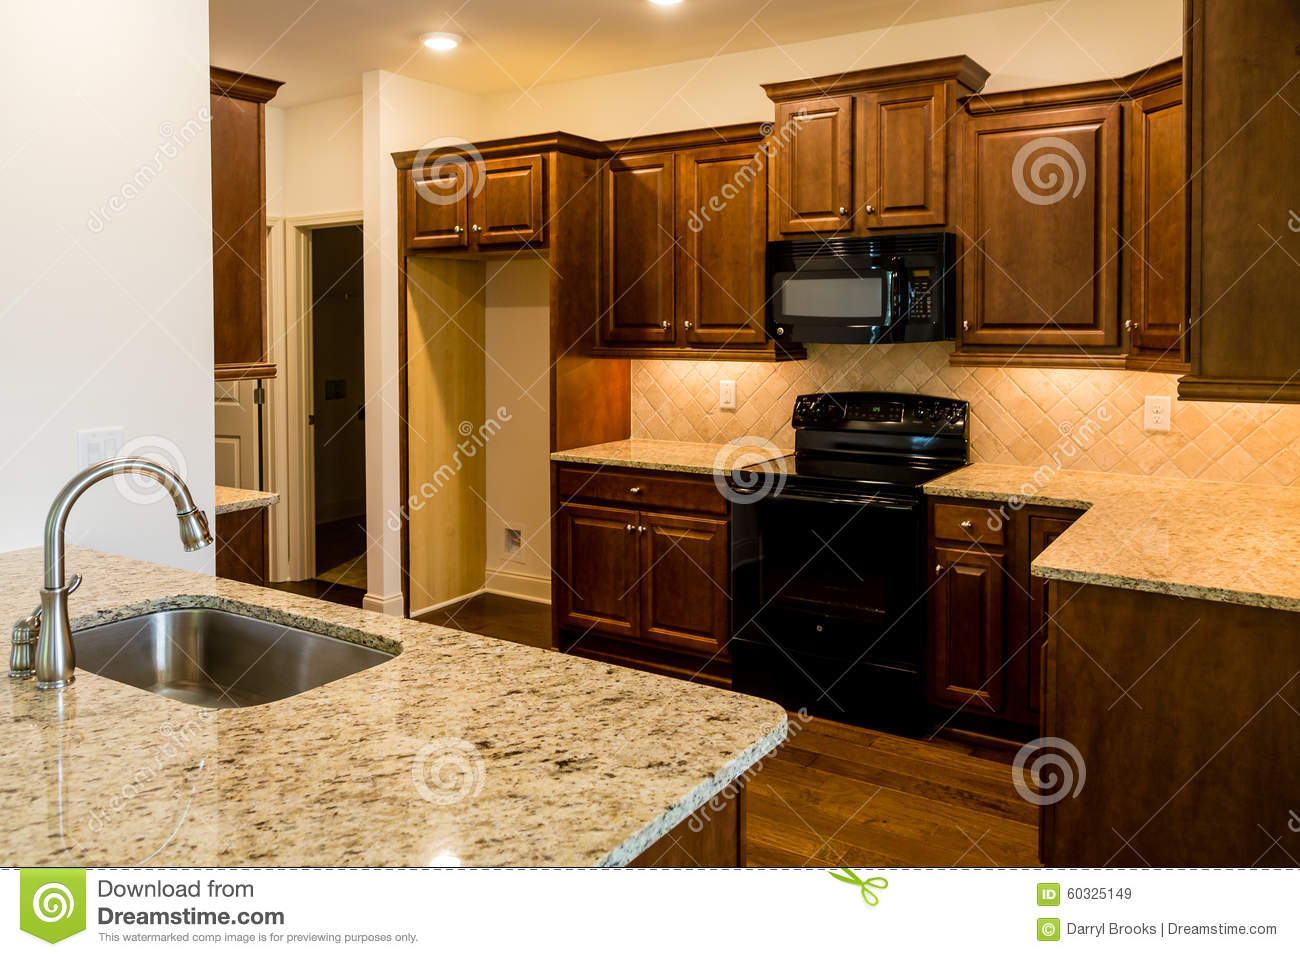 Stainless Steel Sink And Black Appliances Stock Image Image Of Modern Elegant 60325149